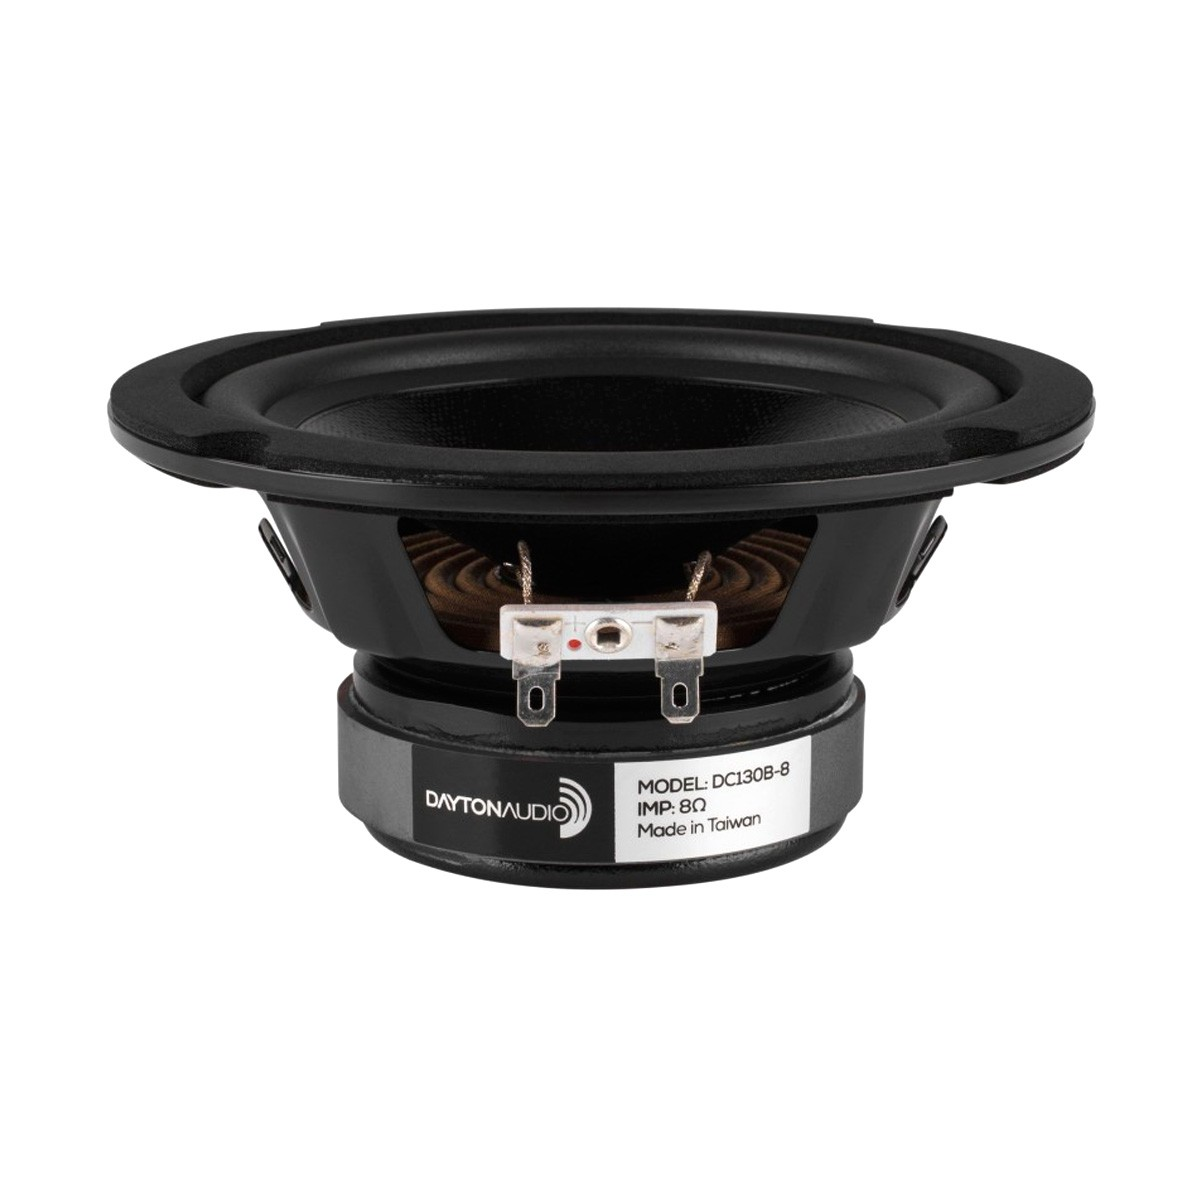 DAYTON AUDIO DC130B-8 Classic Speaker Driver Woofer / Midbass 40W 8 Ohm 89dB 50Hz - 5000Hz Ø13.3cm